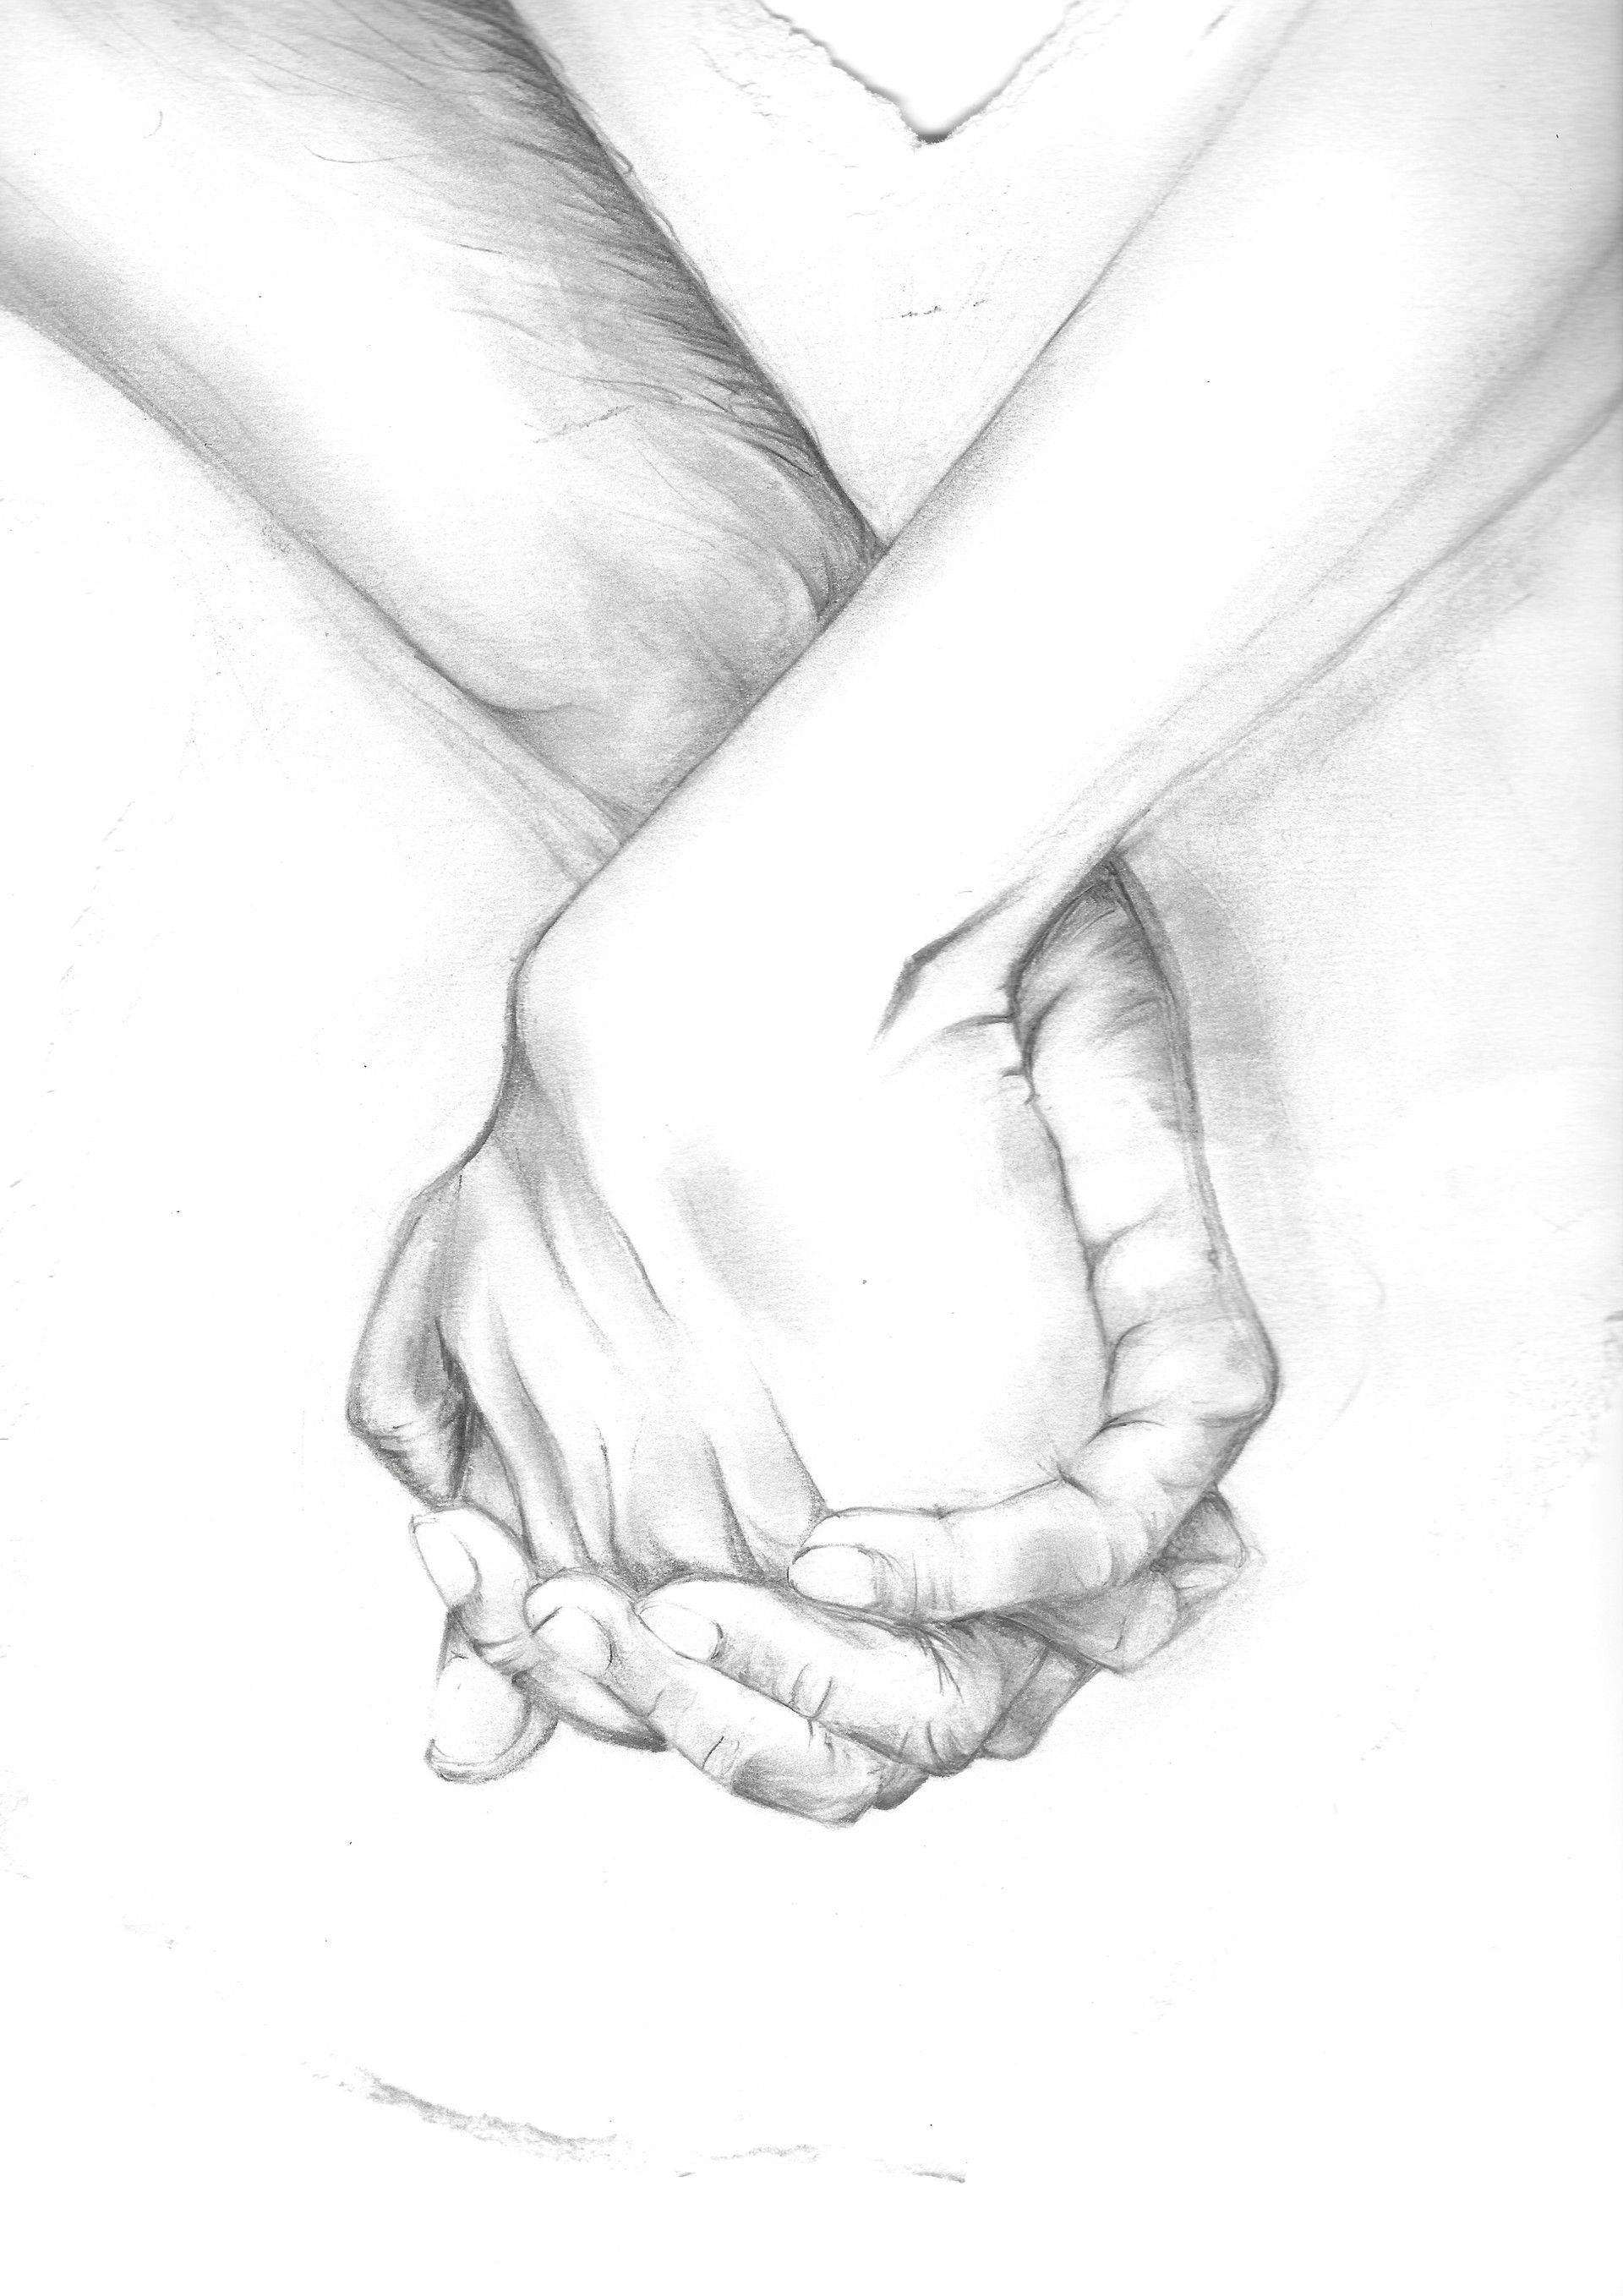 Pin By Barnettex On My Folder Holding Hands Drawing How To Draw Hands Body Image Art